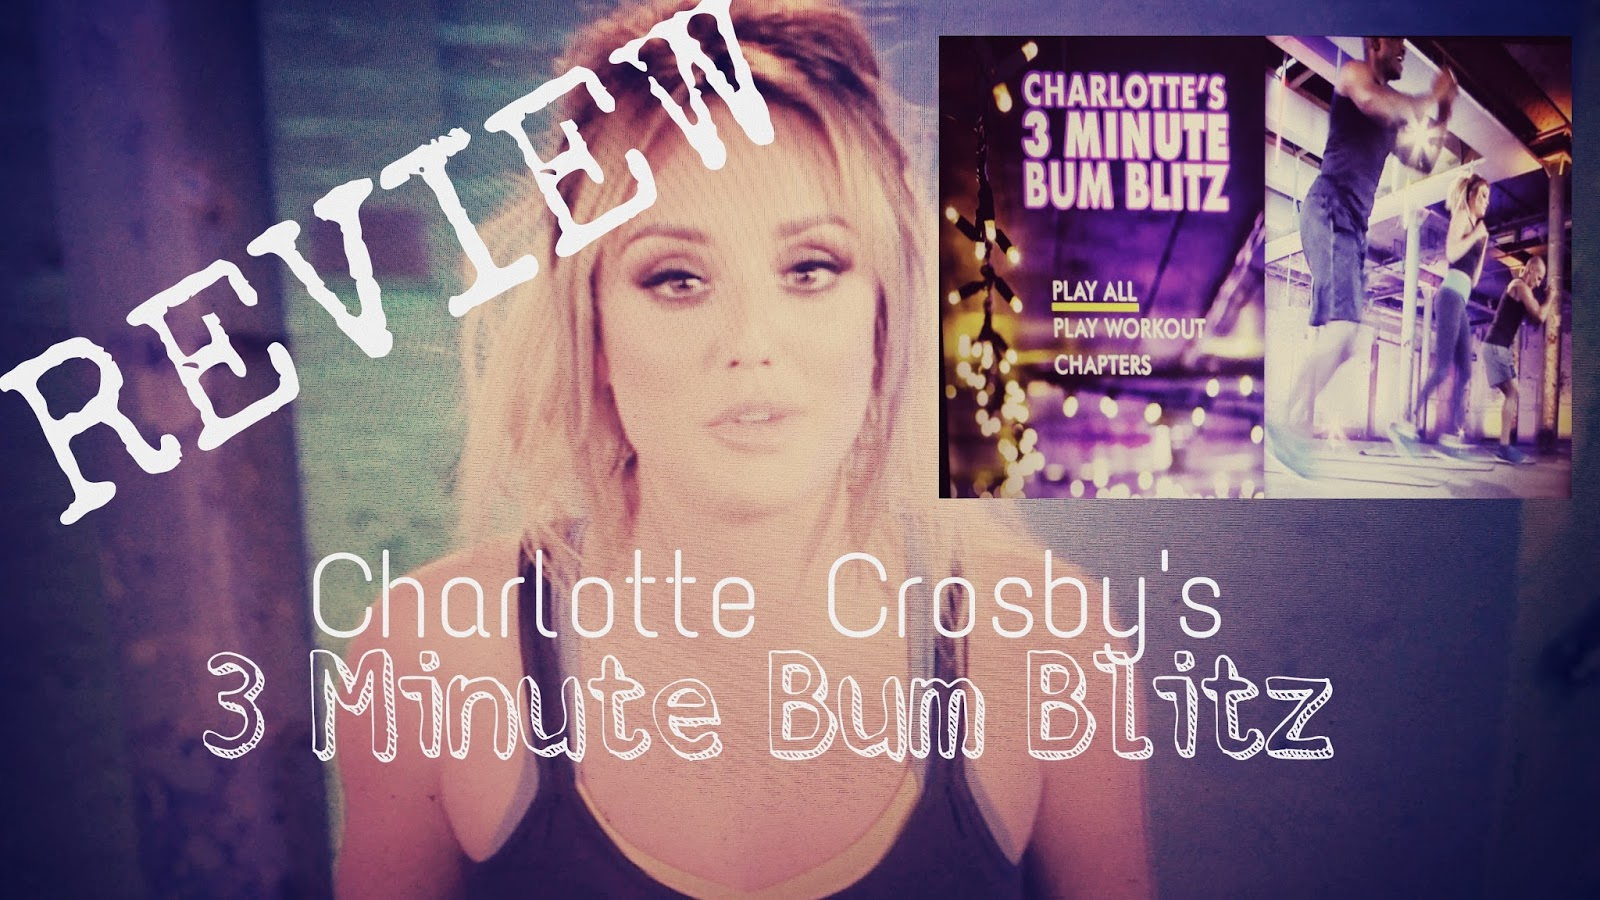 charlotte crosby's 3 minute bum blitz review